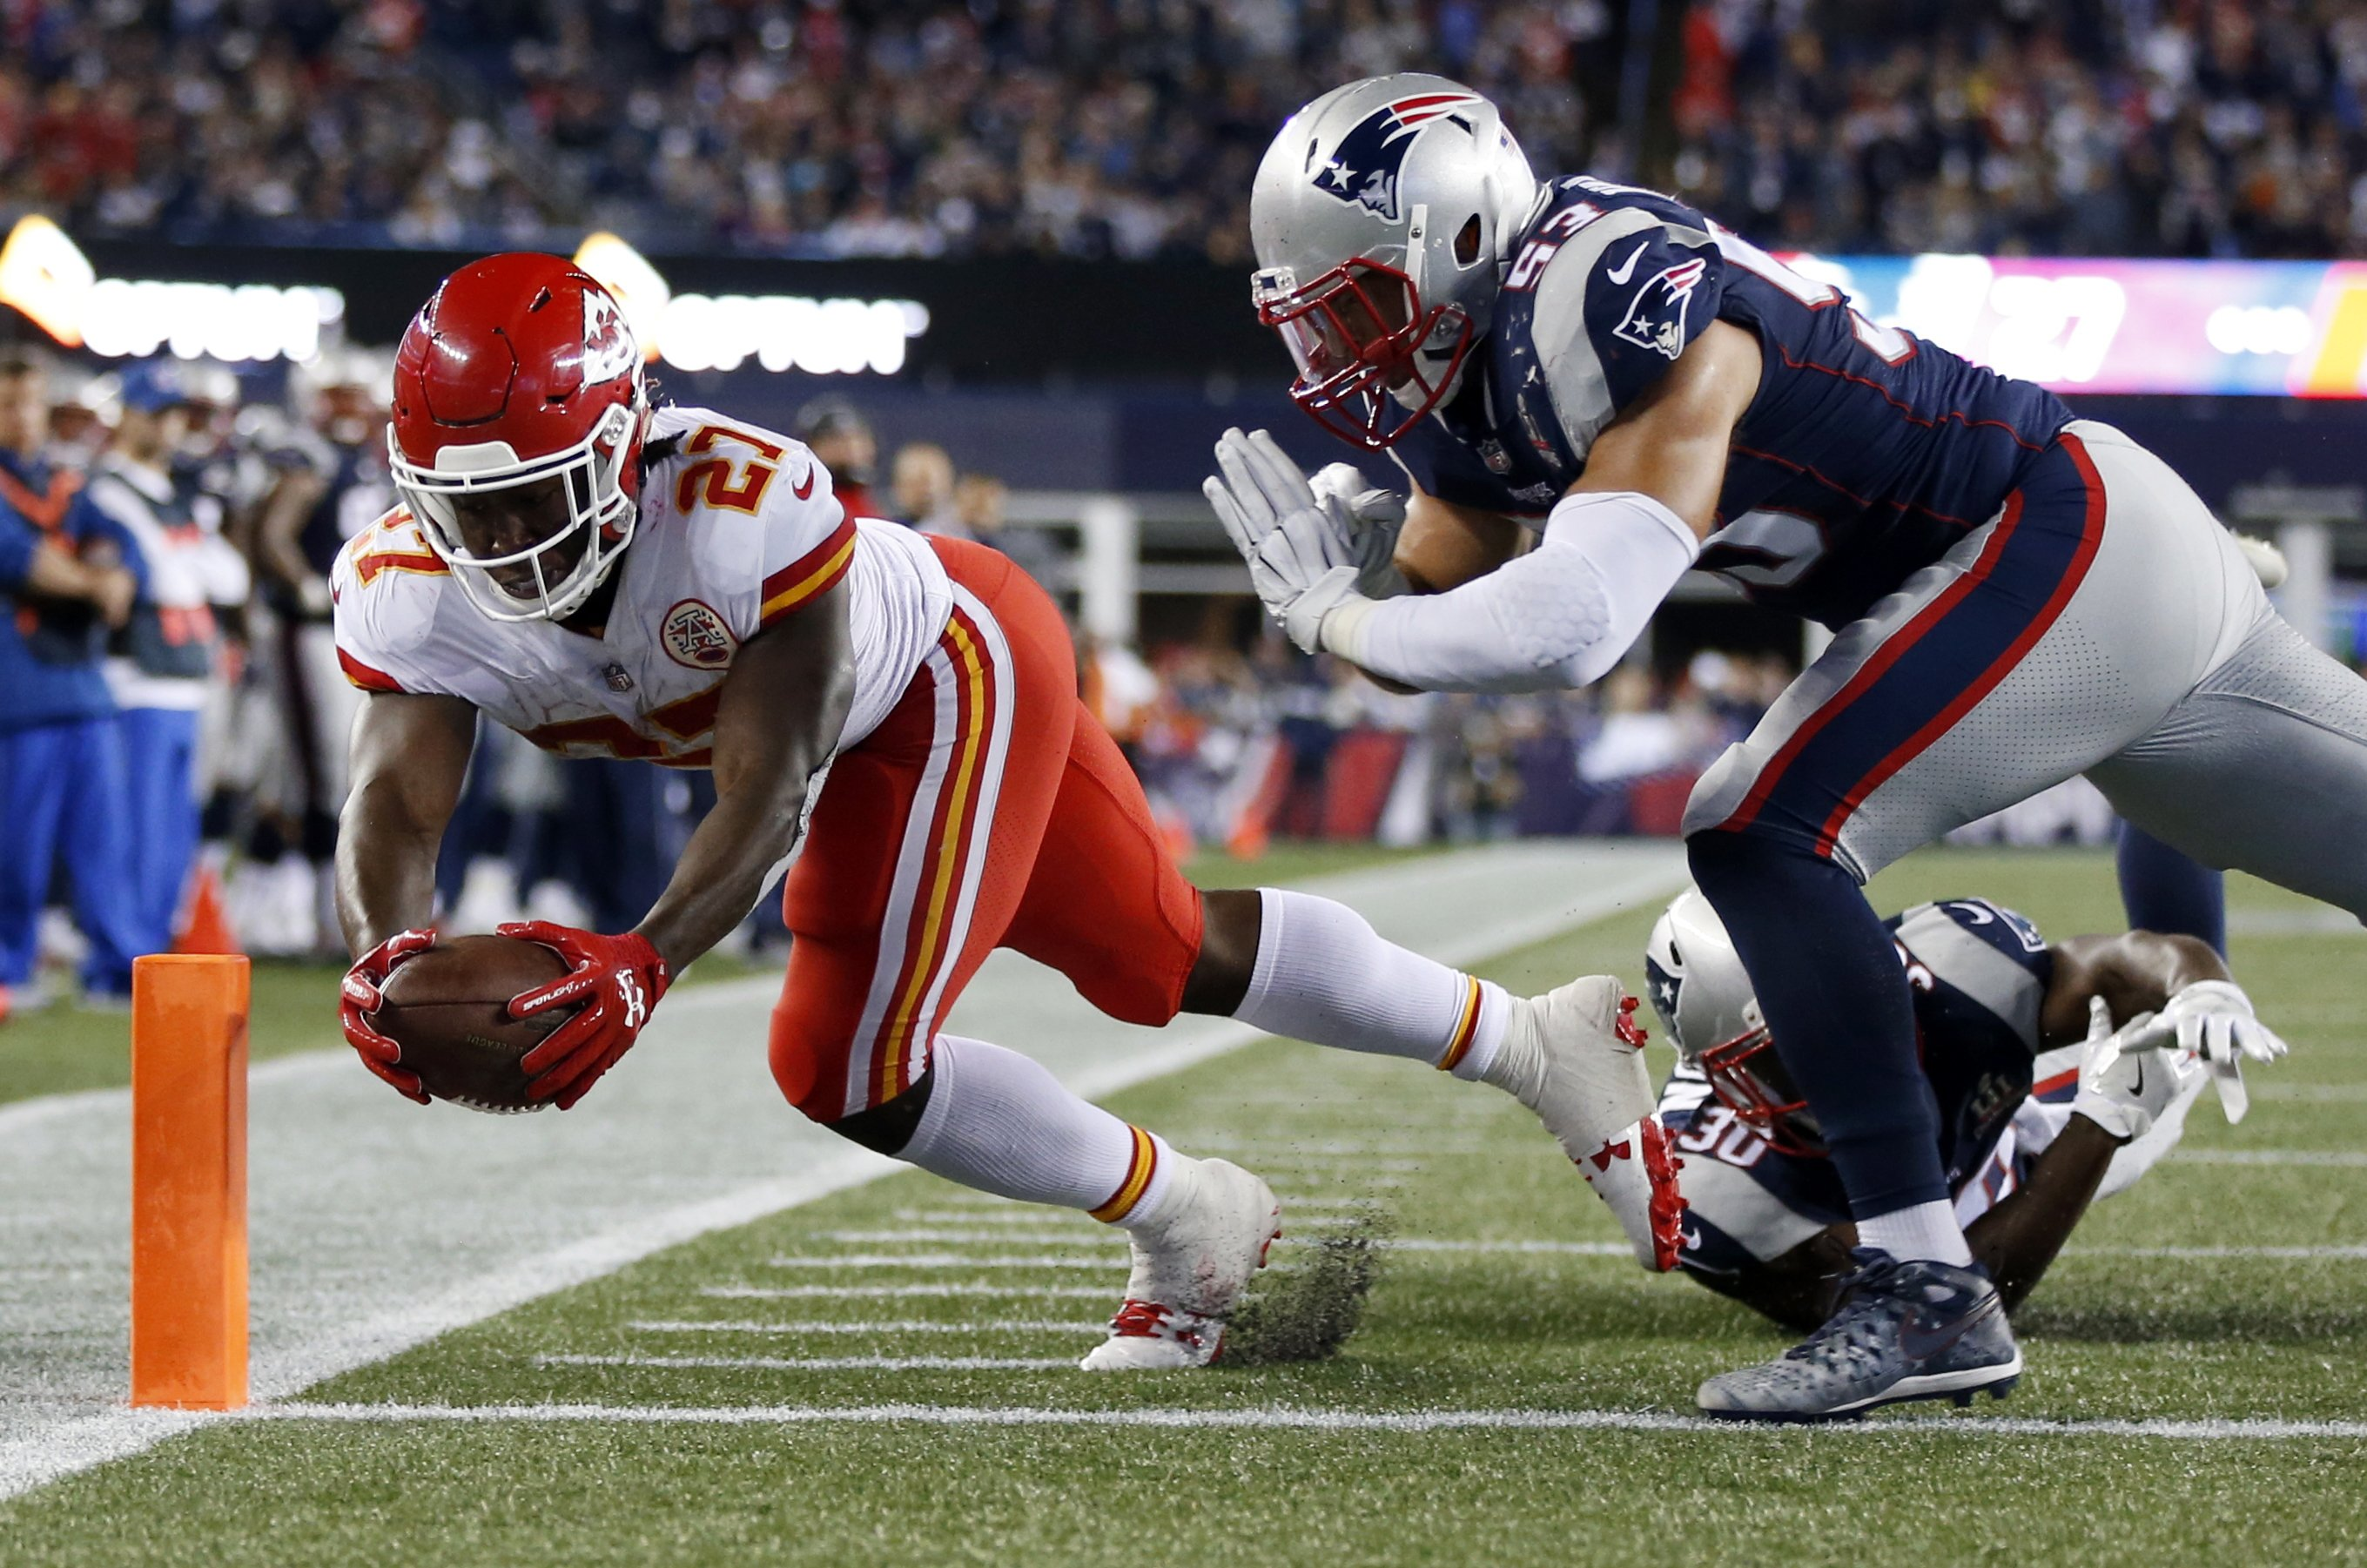 Super letdown: Patriots routed in 2nd half, Chiefs win 42-27